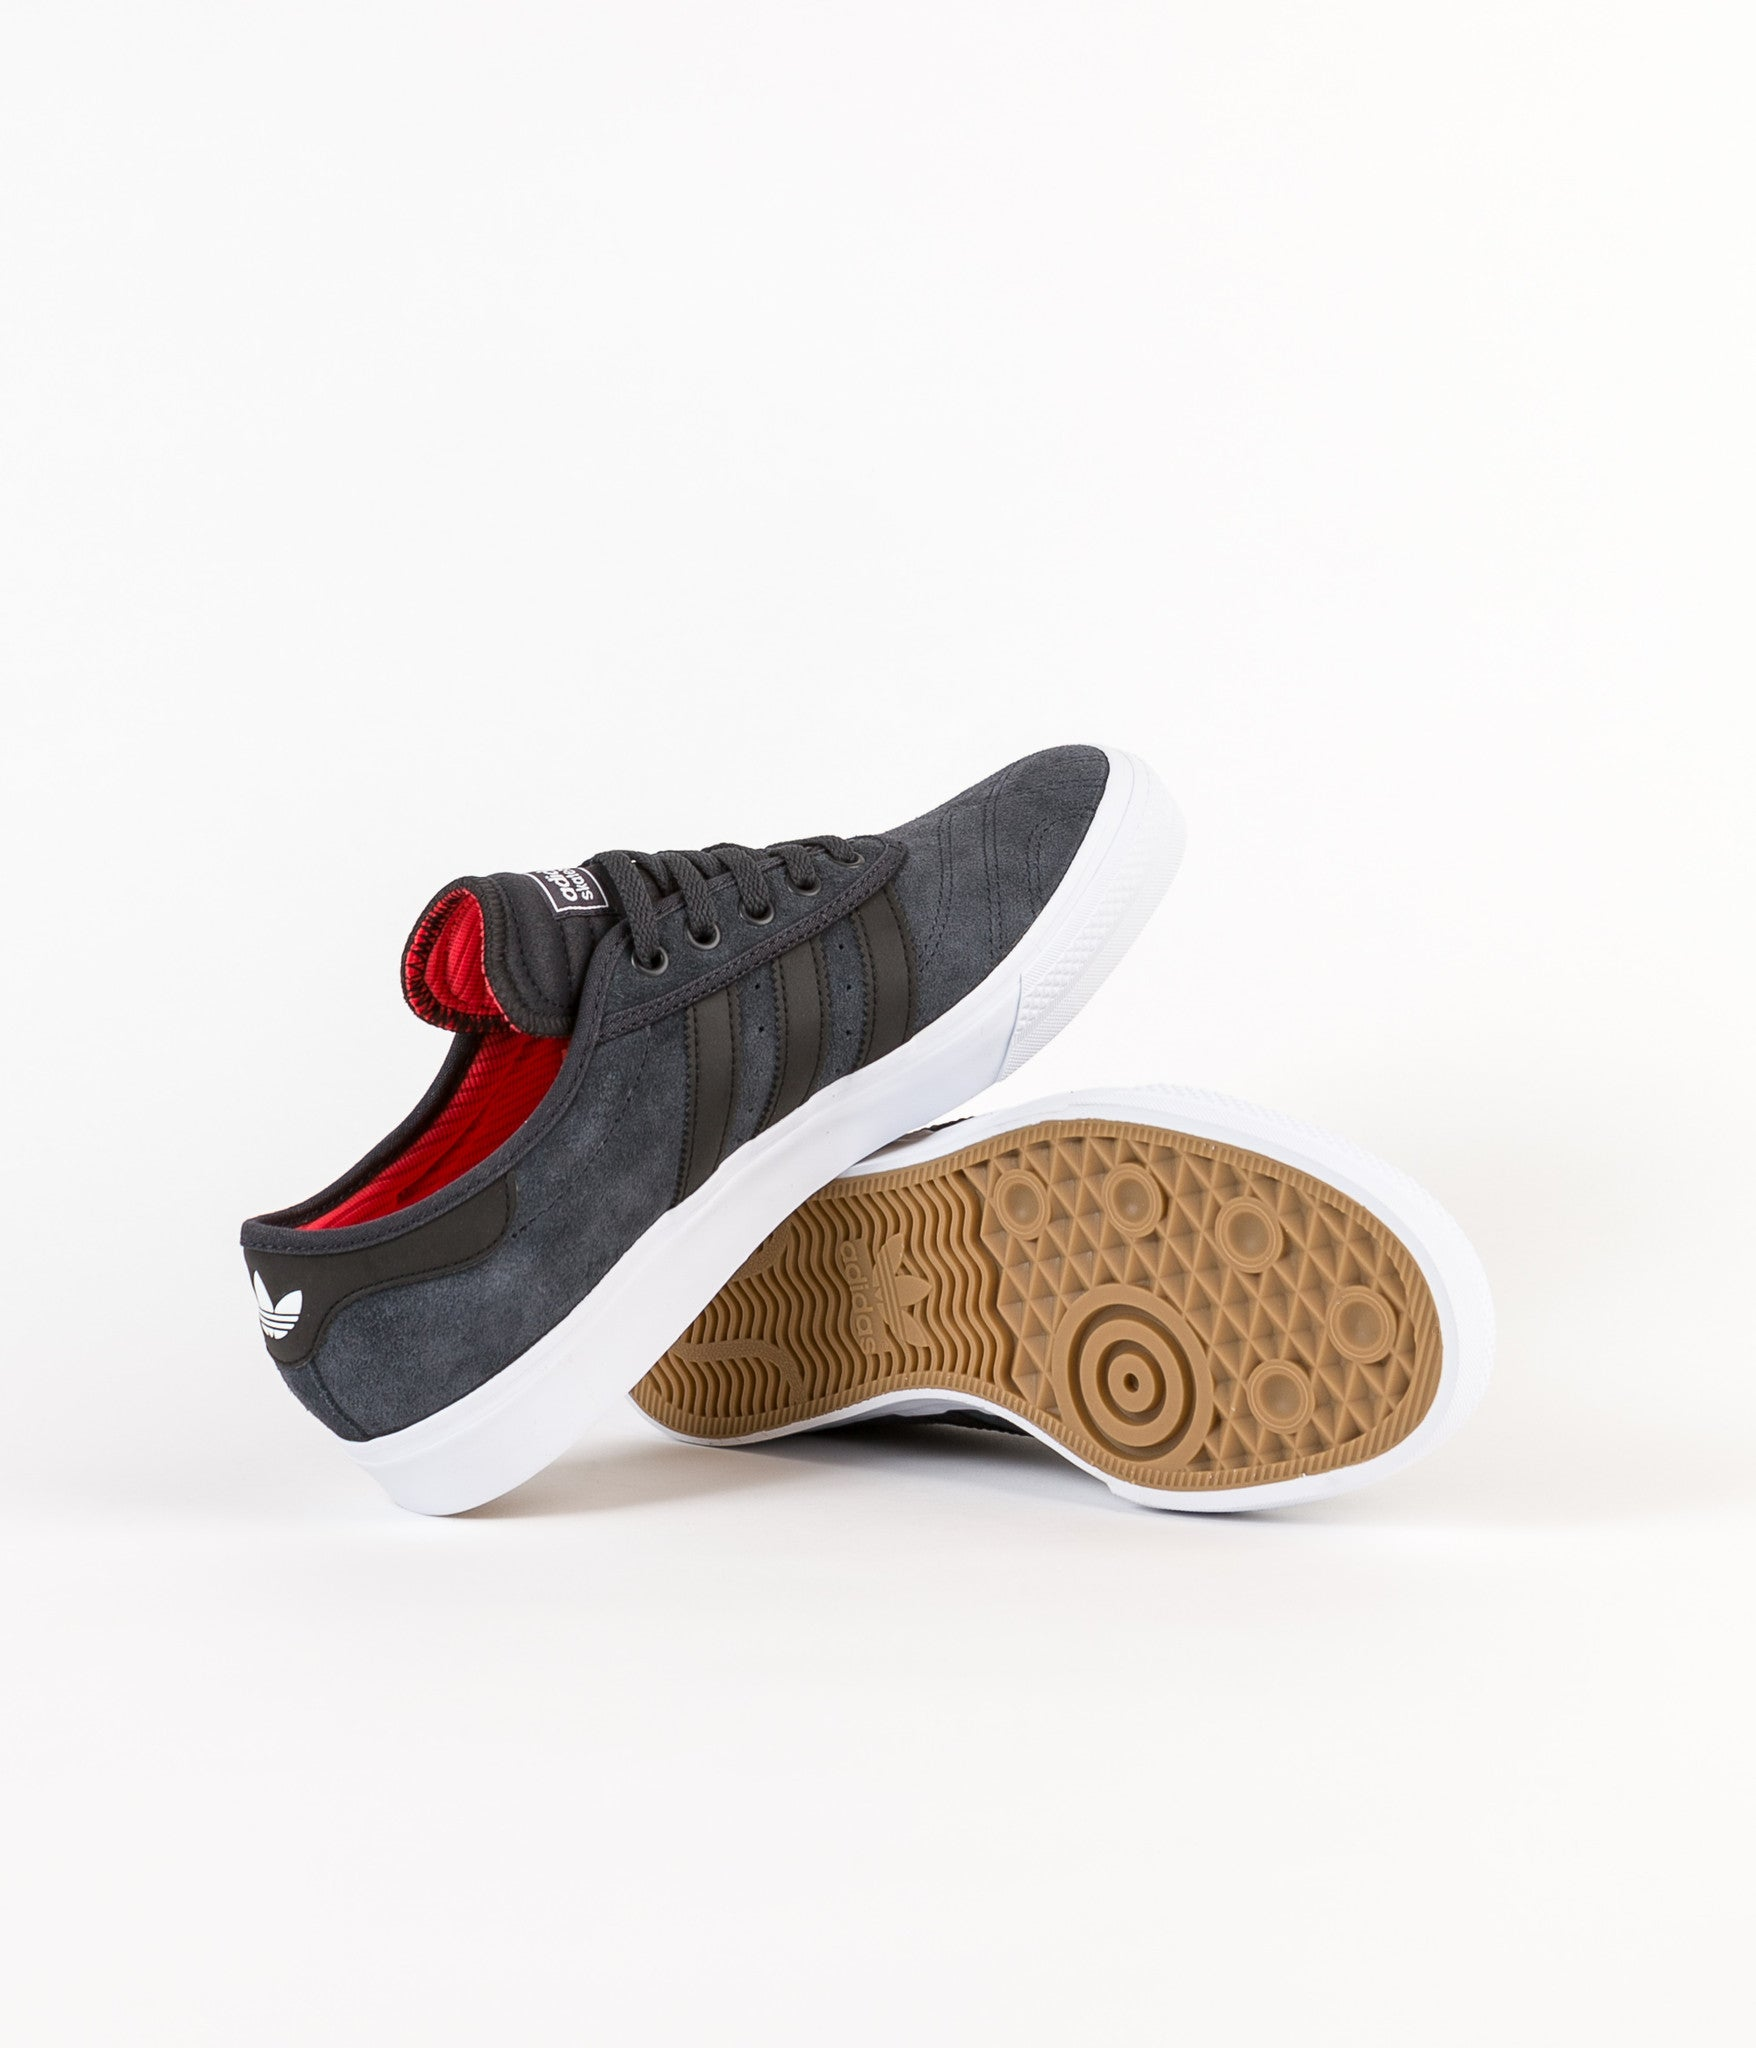 online store 037d7 59bff ... Adidas Adi-Ease Premiere Adv Shoes - Customized   Core Black   White ...